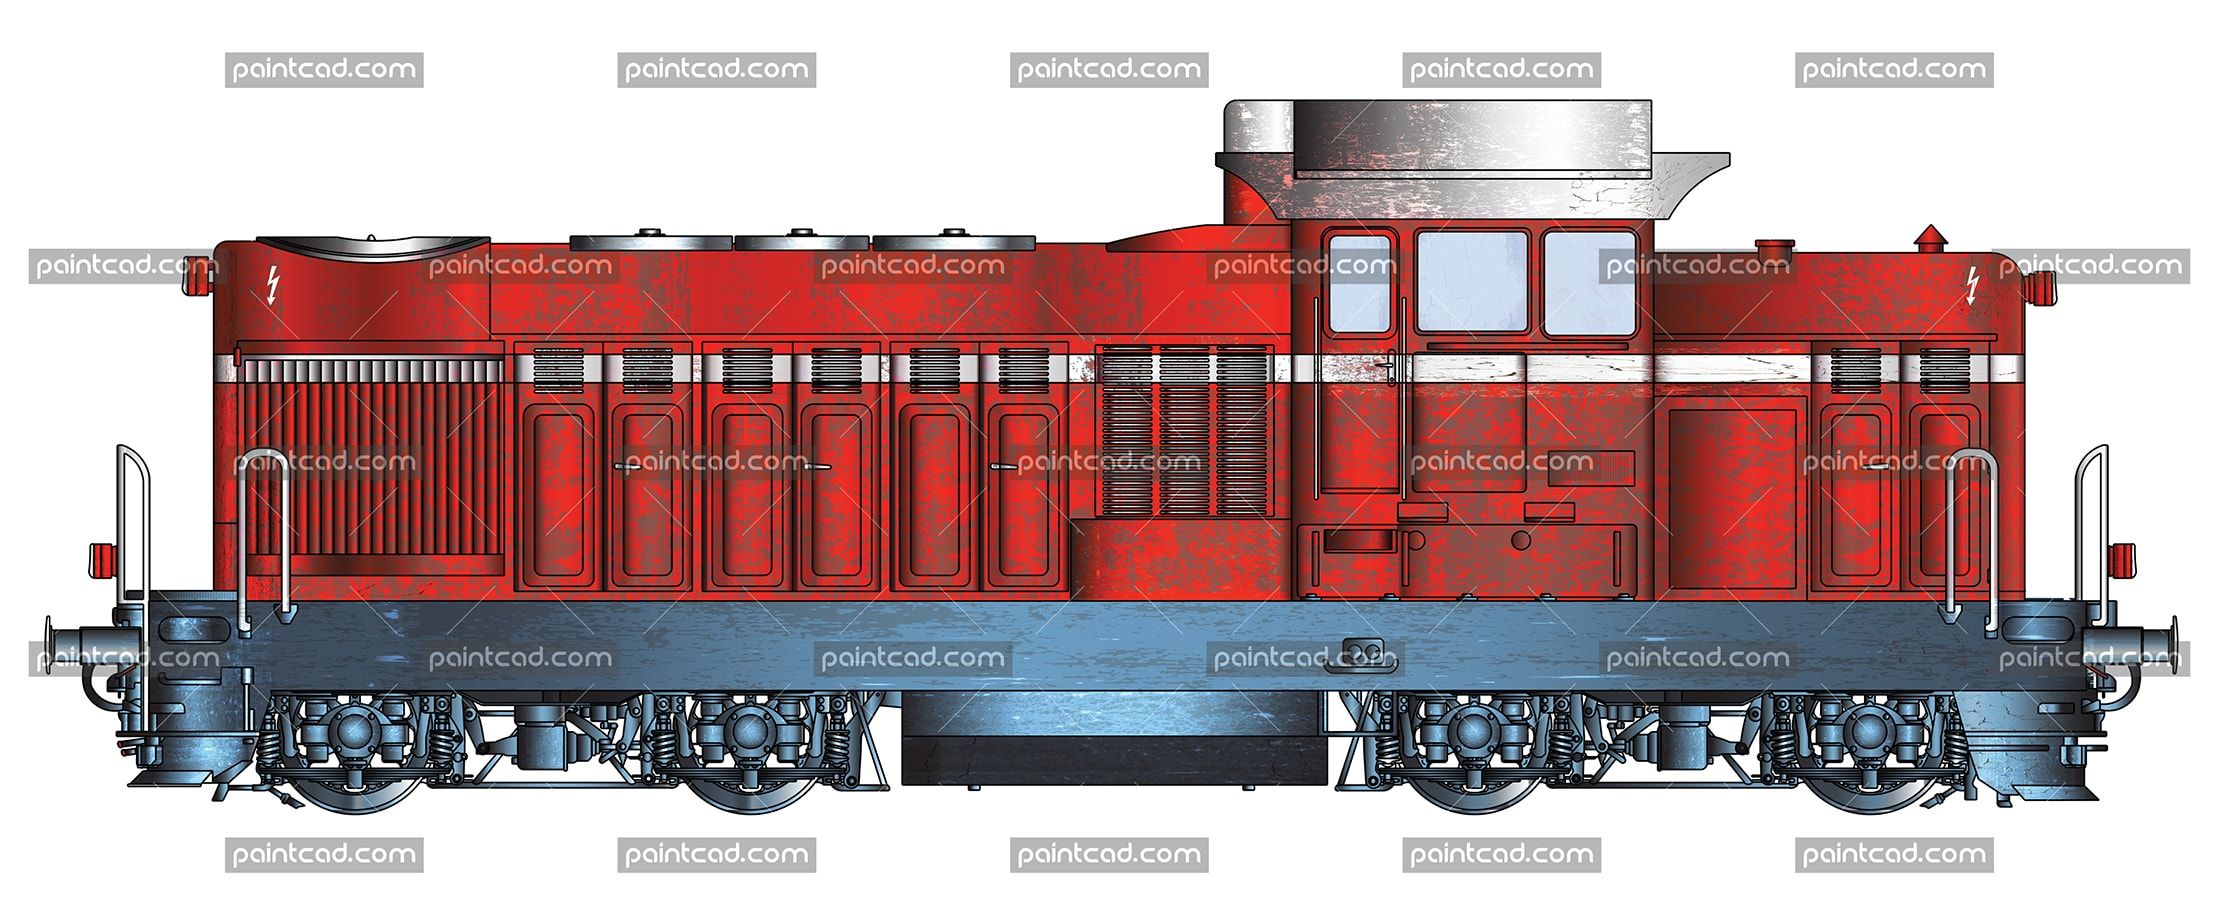 Vector image in high resolution of a bulgarian diesel-hydraulic locomotive. The machine is known as LDH125 in Romania, used by CFR , the state railway of Romania and serie 55 in Bulgaria- the most widespread diesel locomotives in Bulgarian State Railways.  They were built in Bucharest, Romania. They are universal and used for different activities. Mainly used for ordinary and heavy shunting work. Their design and technical parameters allow service freight, passenger and express trains.